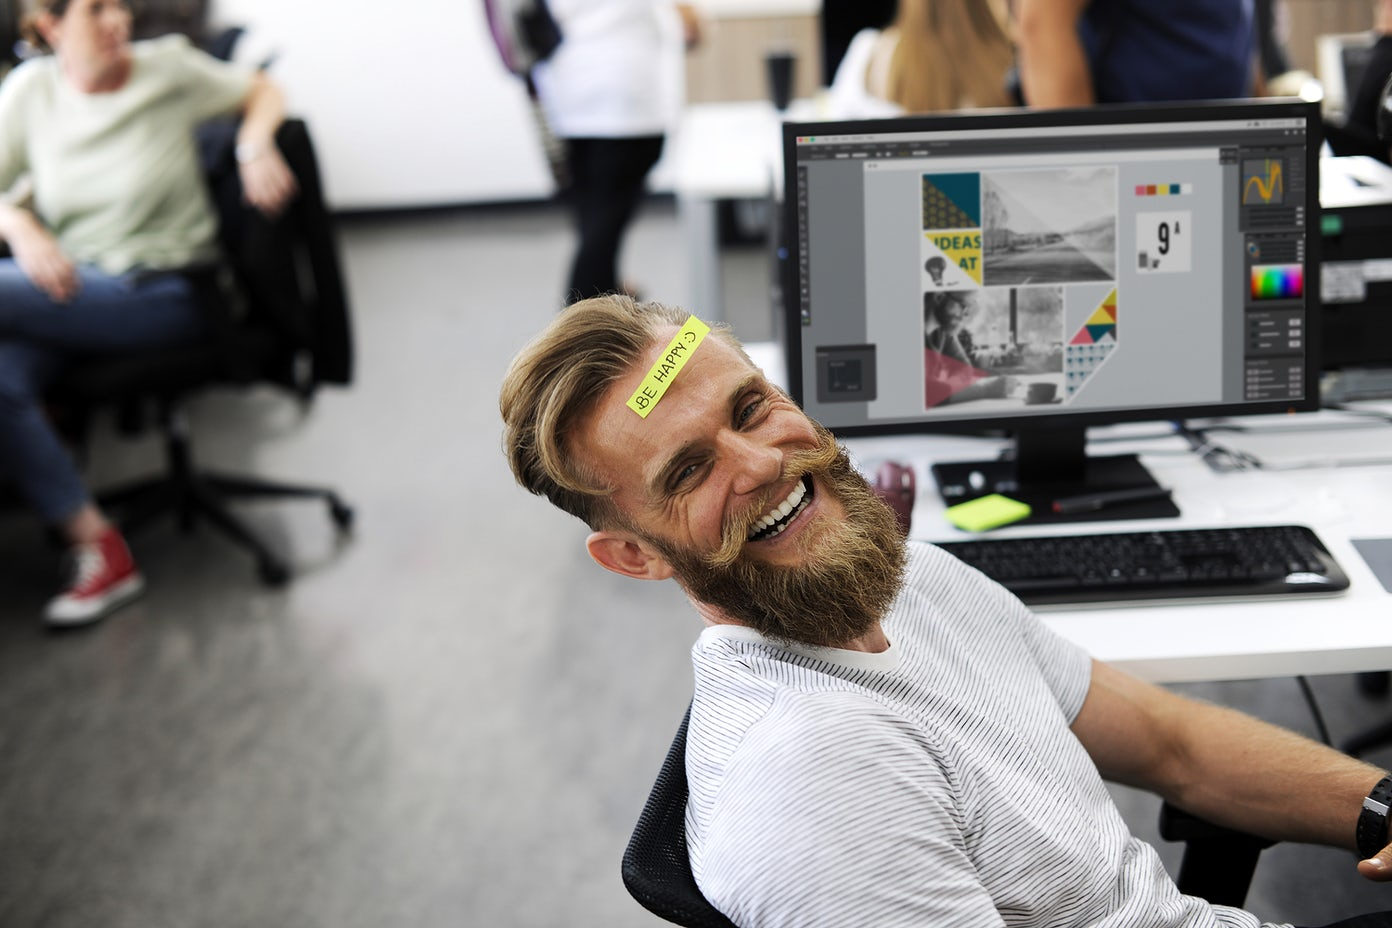 Man Having Be Happy Sticky Note on Forehead Durin Office Break Time